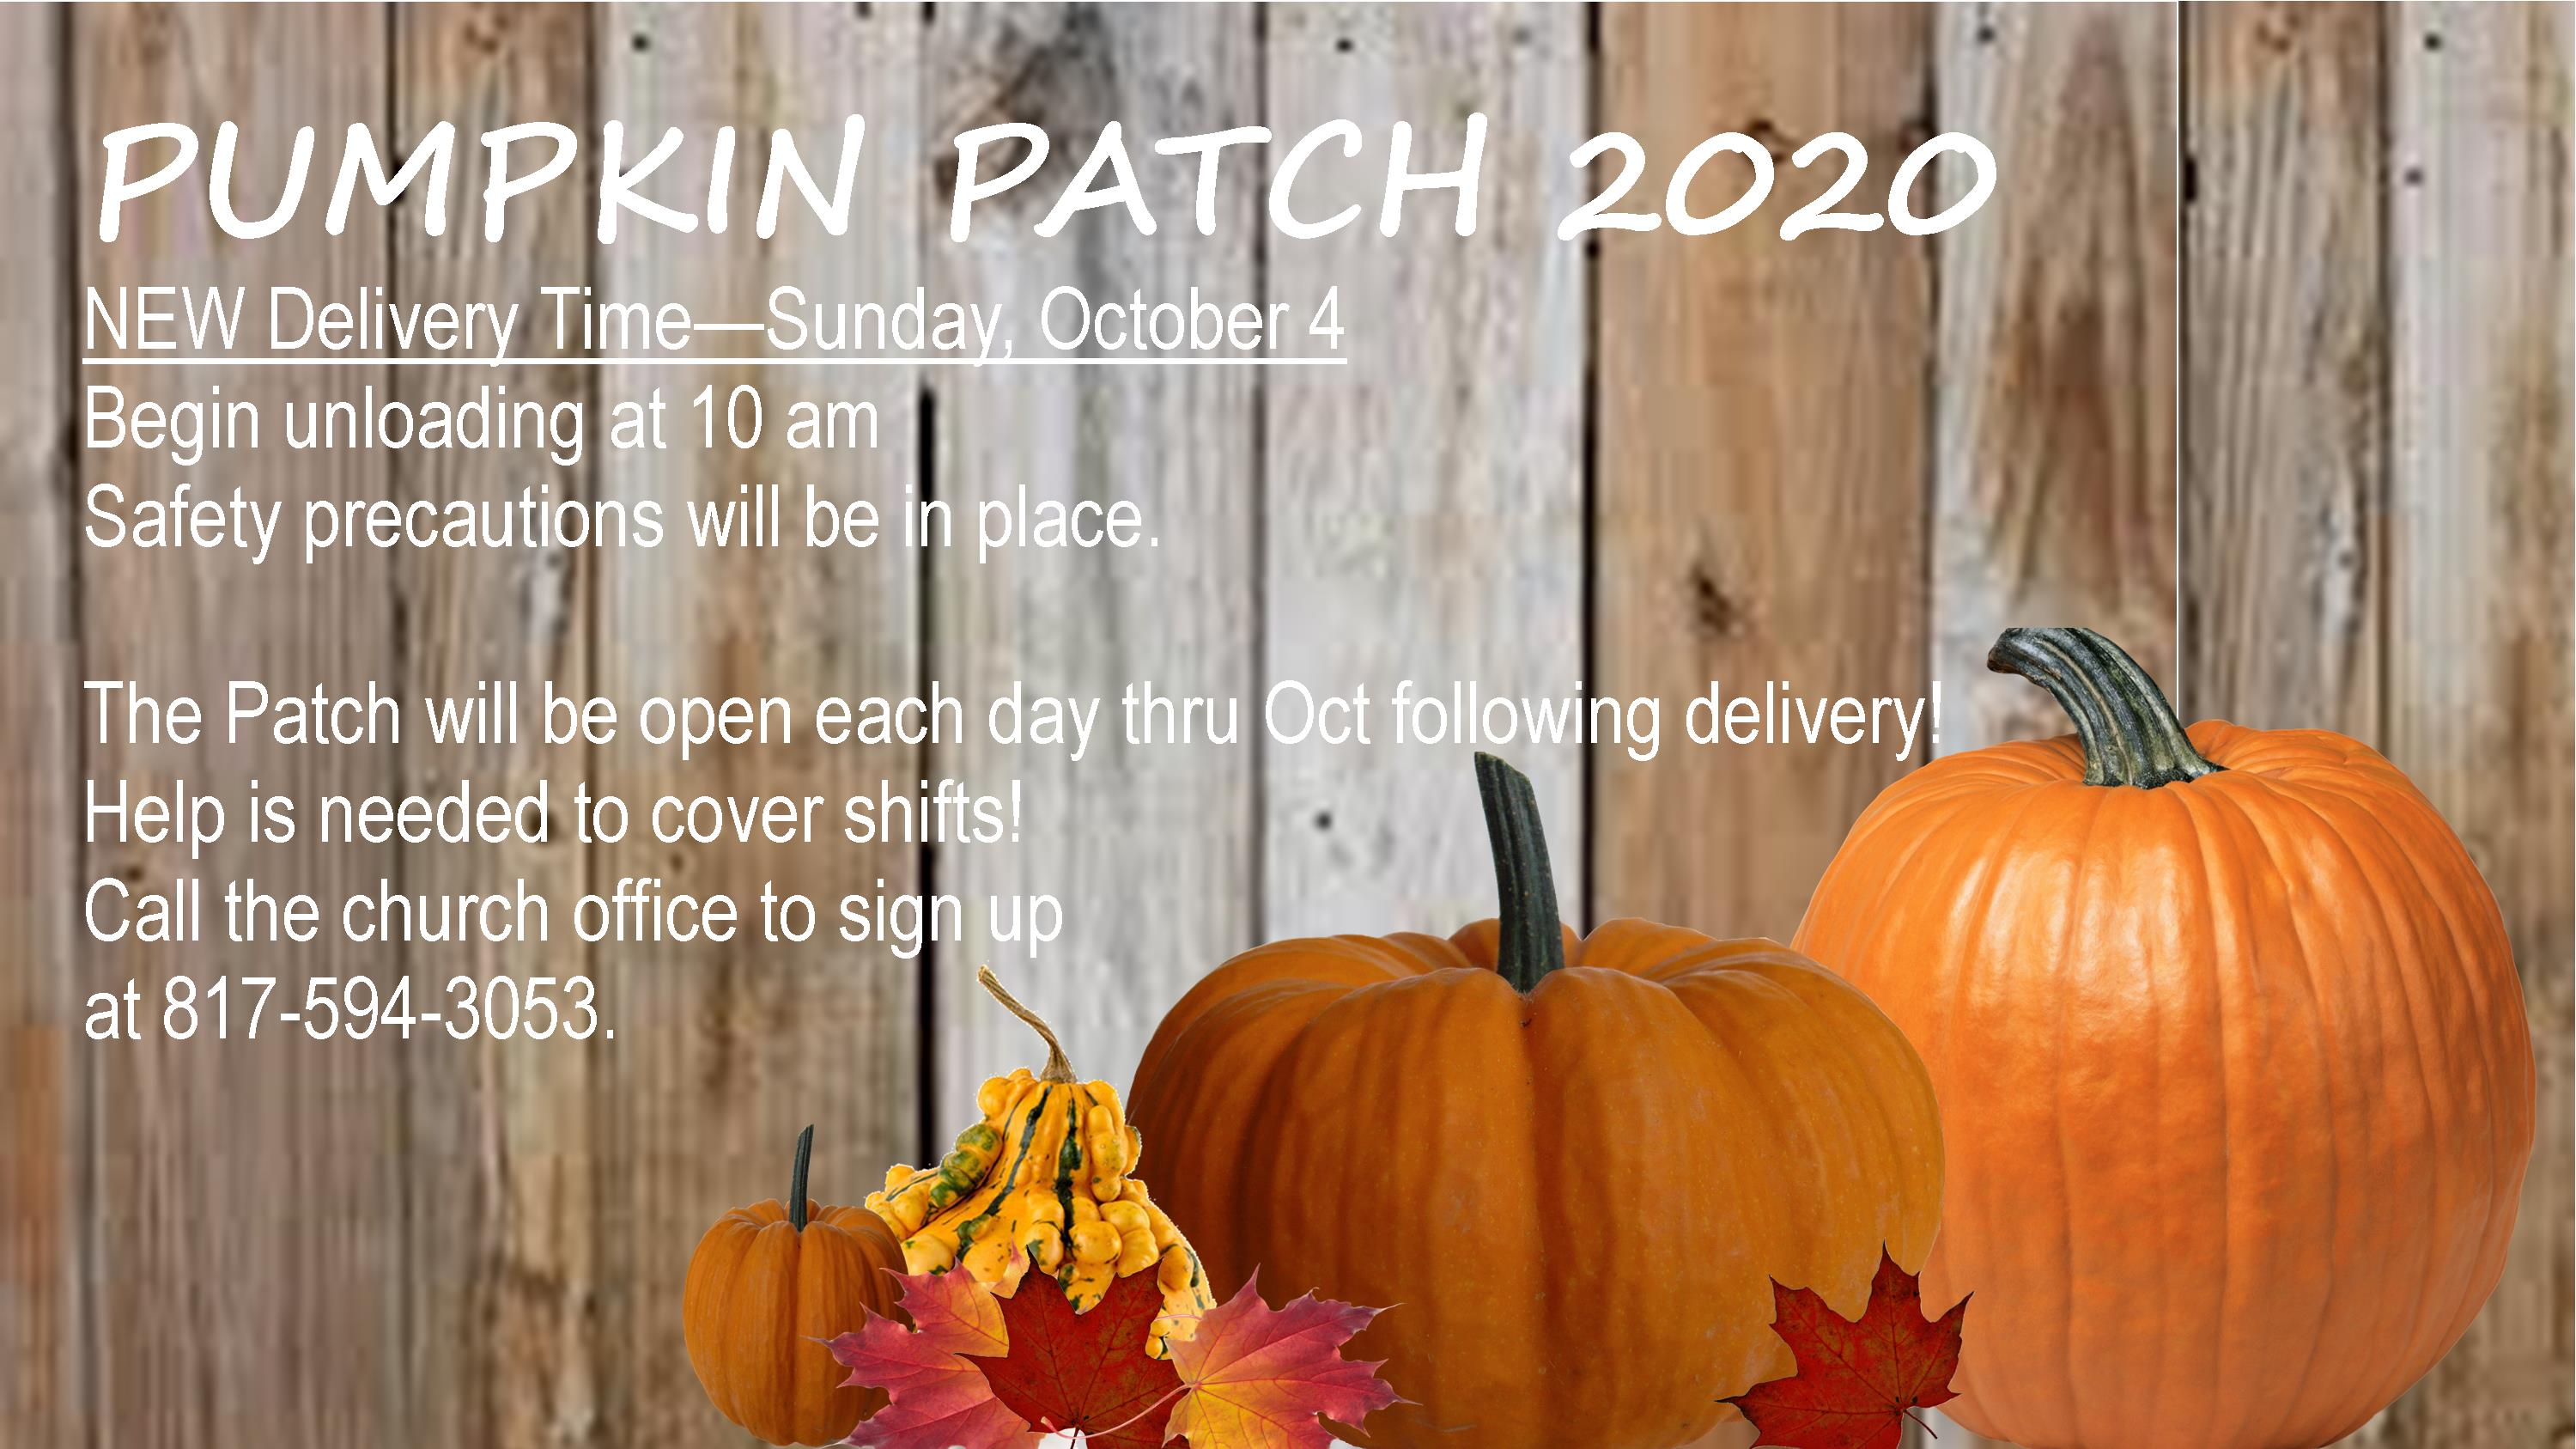 Pumpkin Patch 2020 Delivery 2